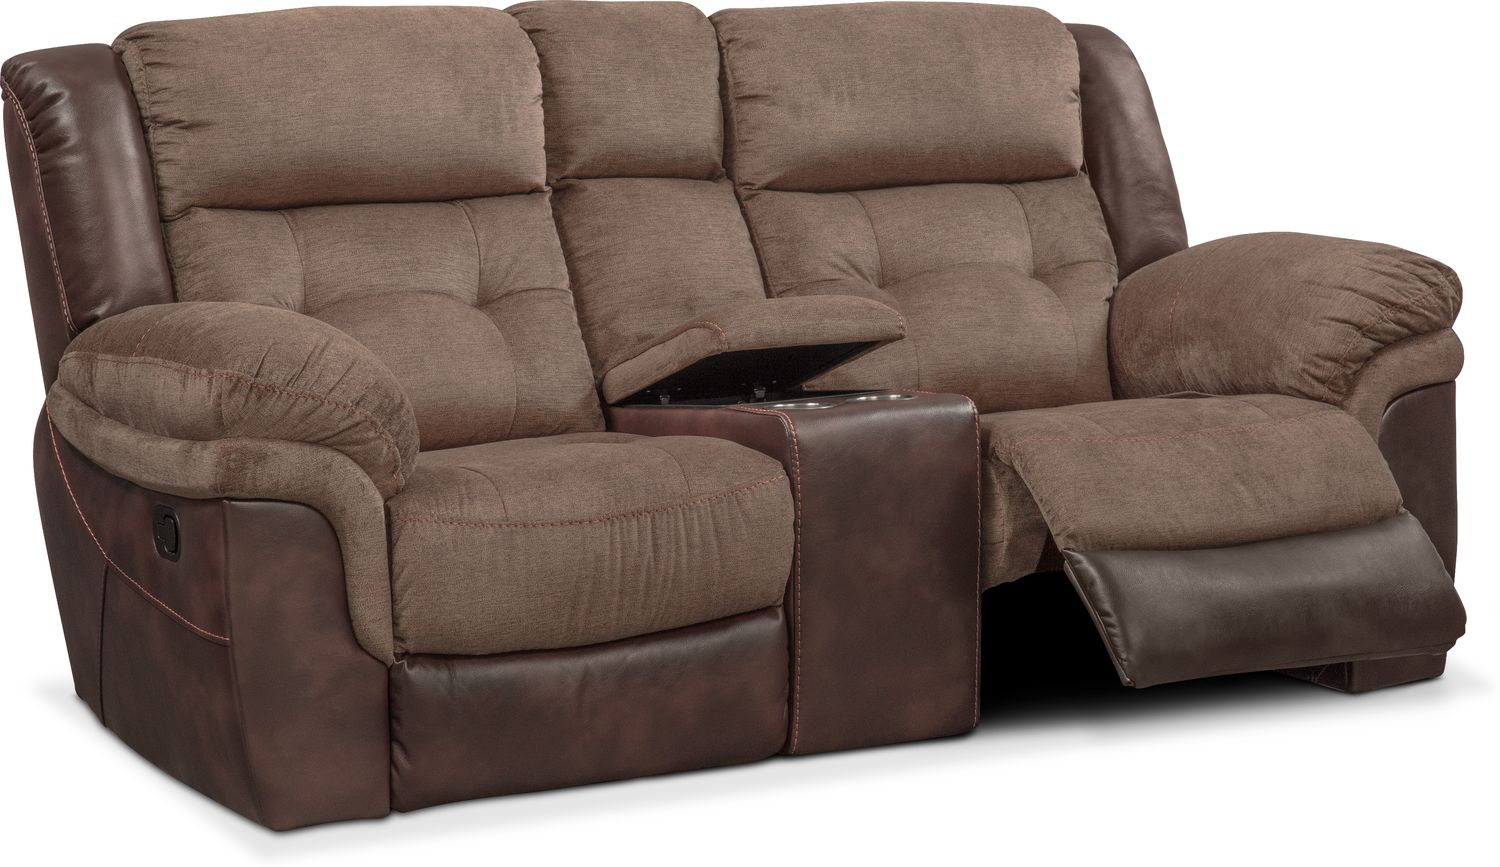 Tacoma Manual Reclining Loveseat With Console Brown American Signature Furniture